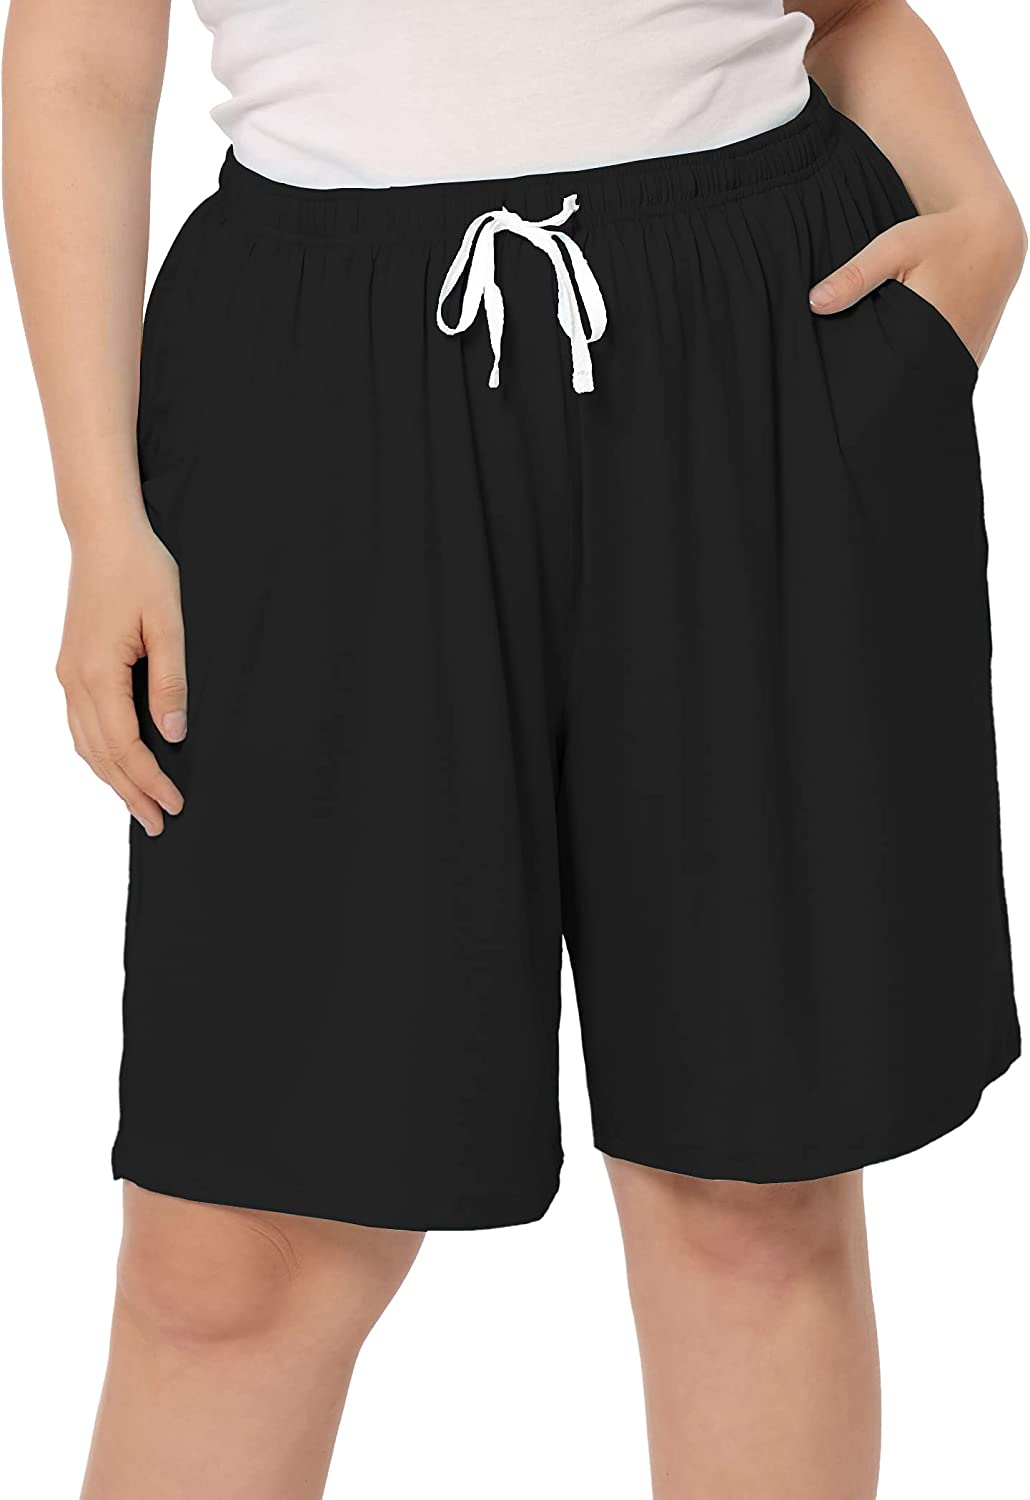 ZERDOCEAN Women's Plus Size Casual Lounge Shorts Comfy Relaxed Pajama Bottoms Drawstring with Pockets